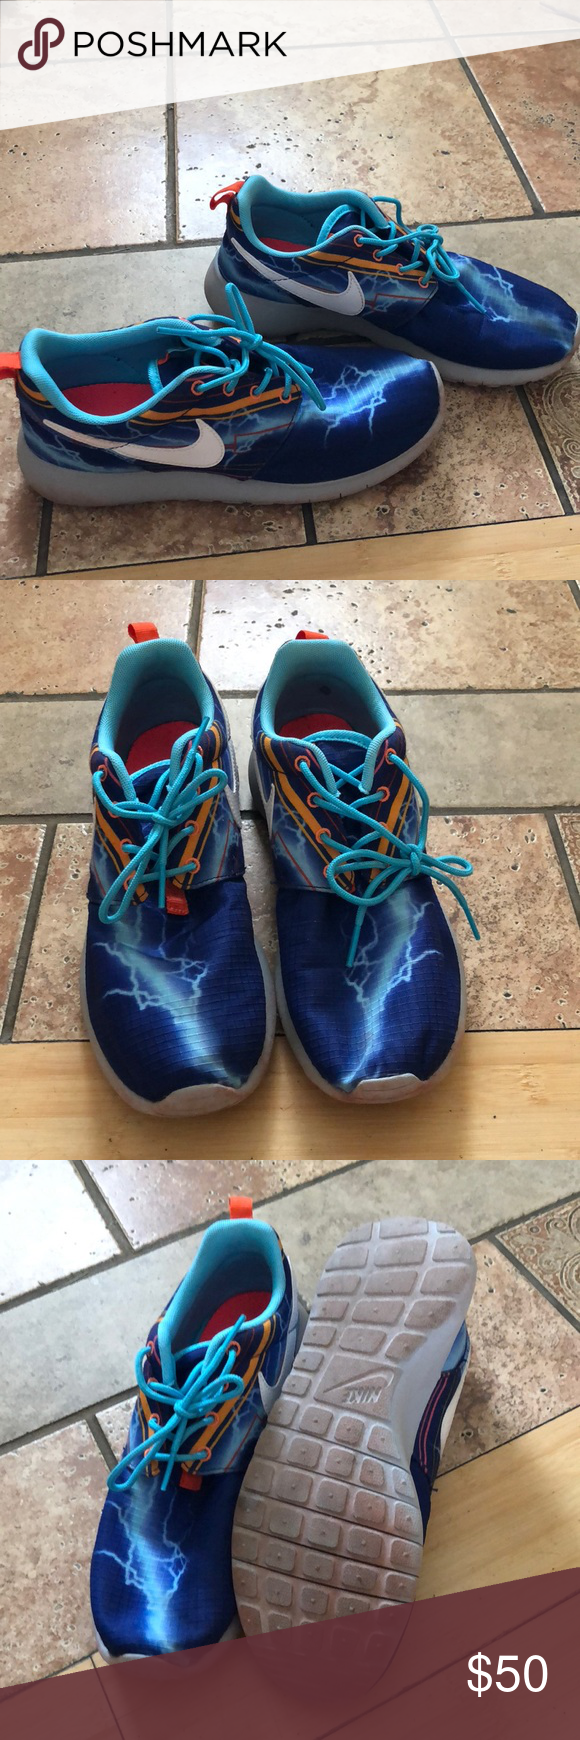 1708a979adbf Nike Roshe Lightning bolt Nike roshes. Barely worn. They are youth 5.5  which is women s 8 Nike Shoes Athletic Shoes